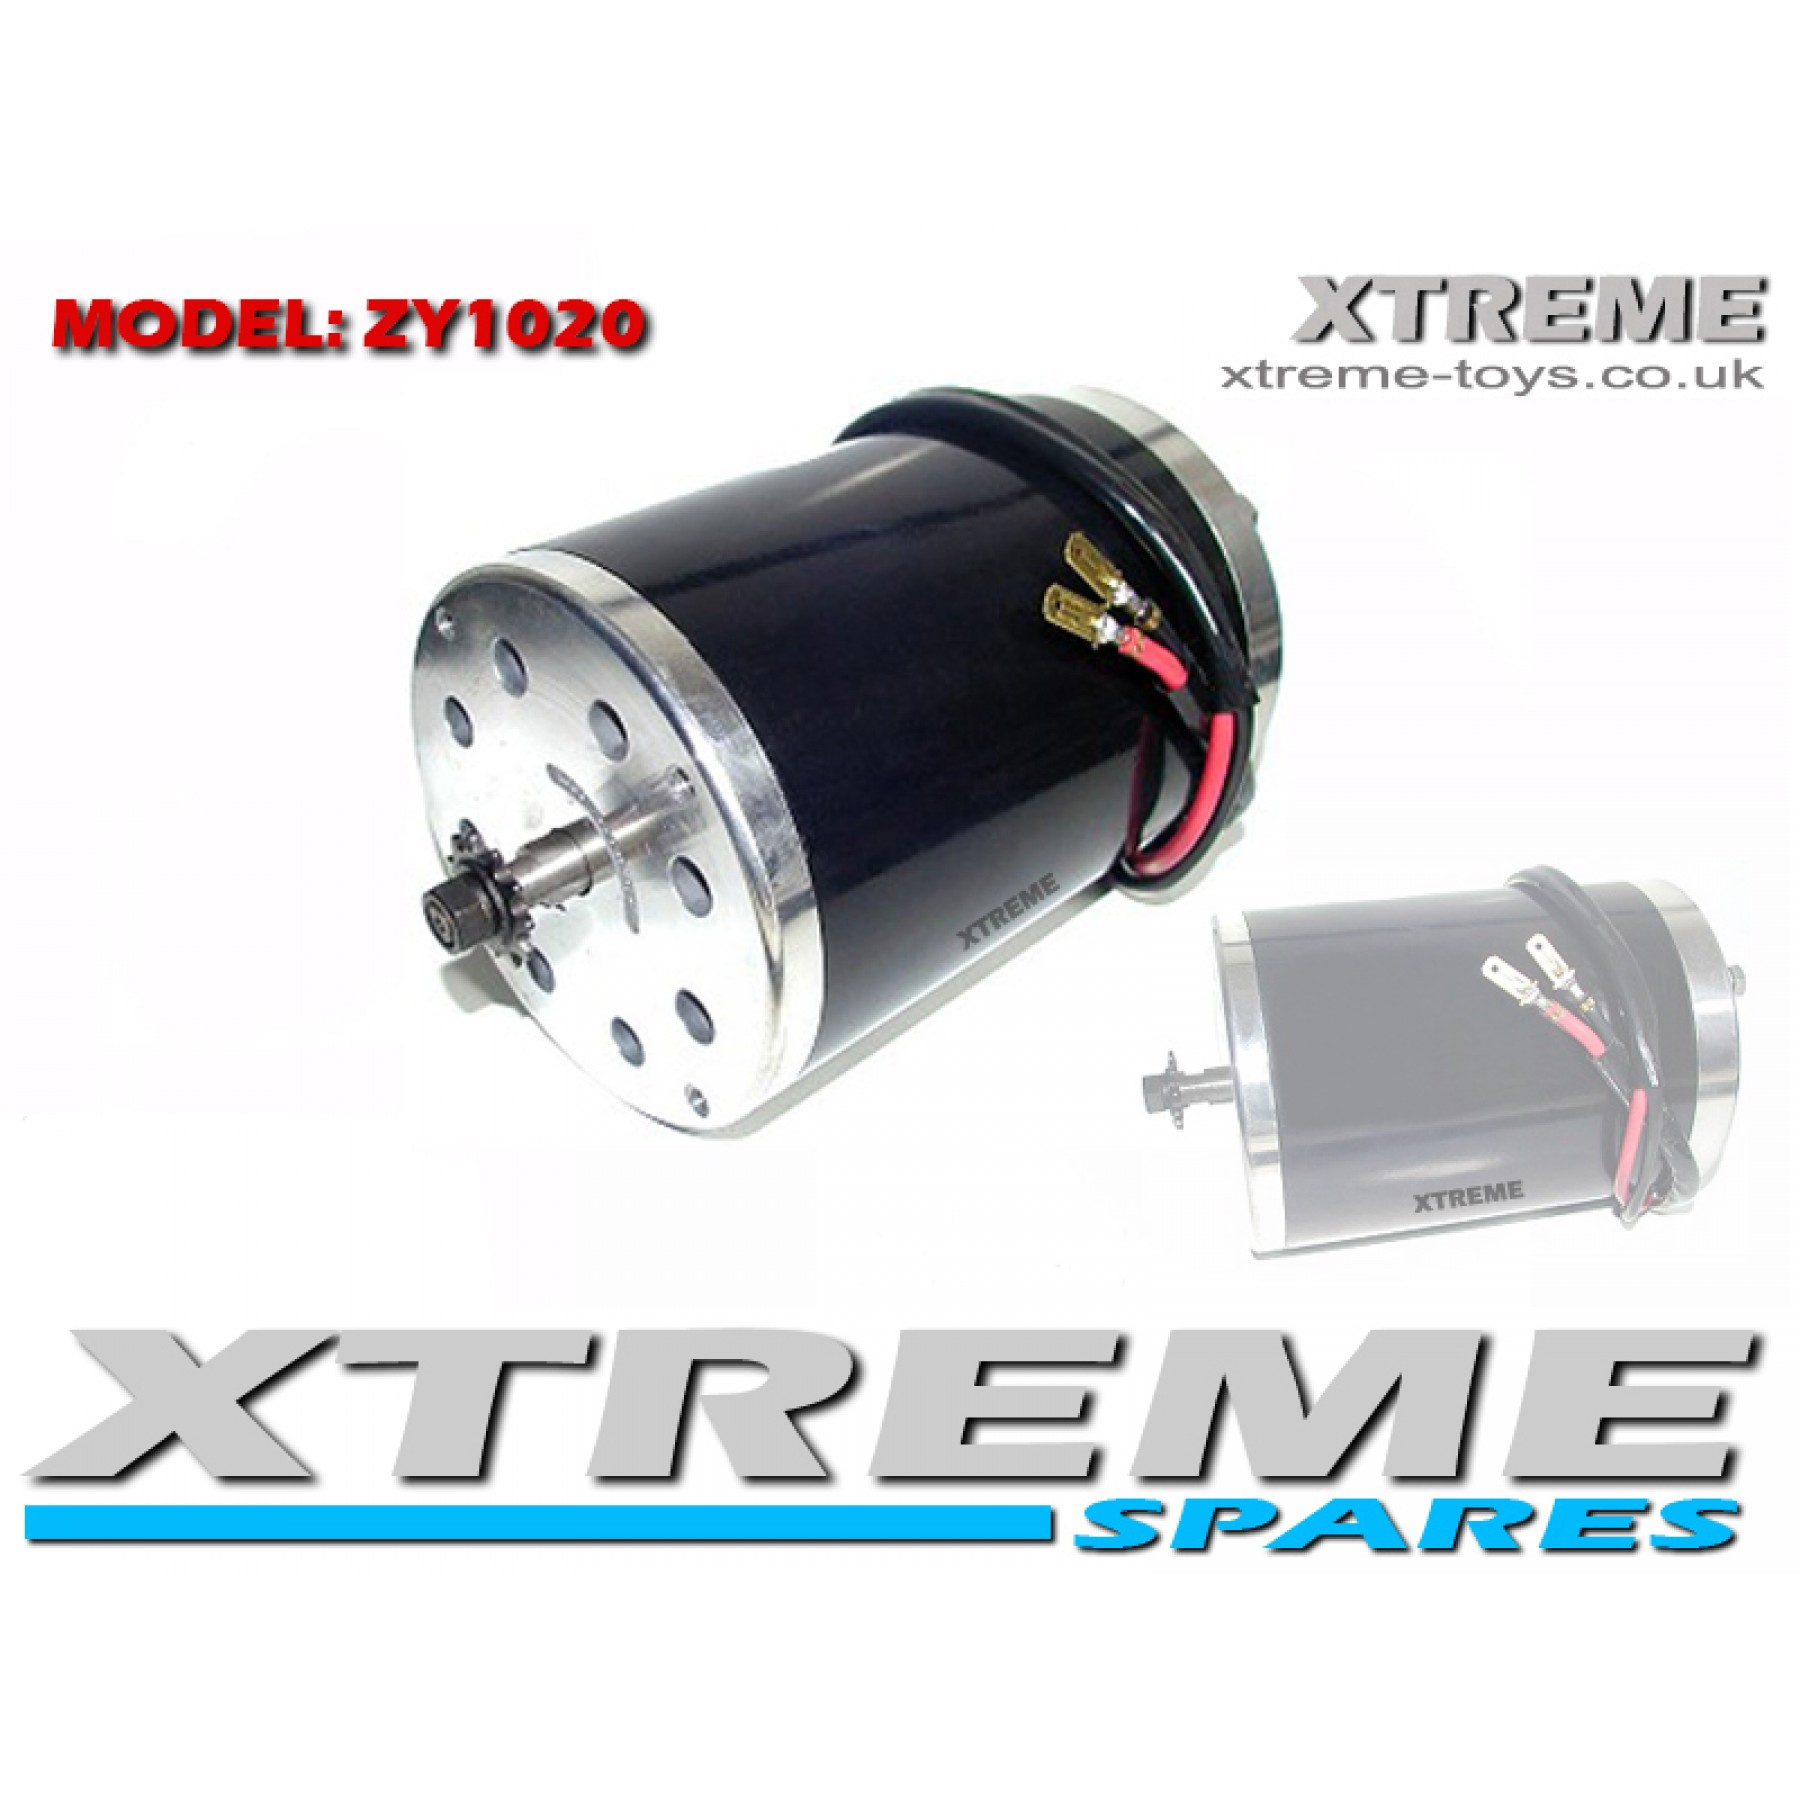 E SCOOTER ZY1020 36v 500w MOTOR WITH 11 TOOTH SPROCKET FOR #25 CHAIN GO PED/ DIRT BIKES/ QUAD